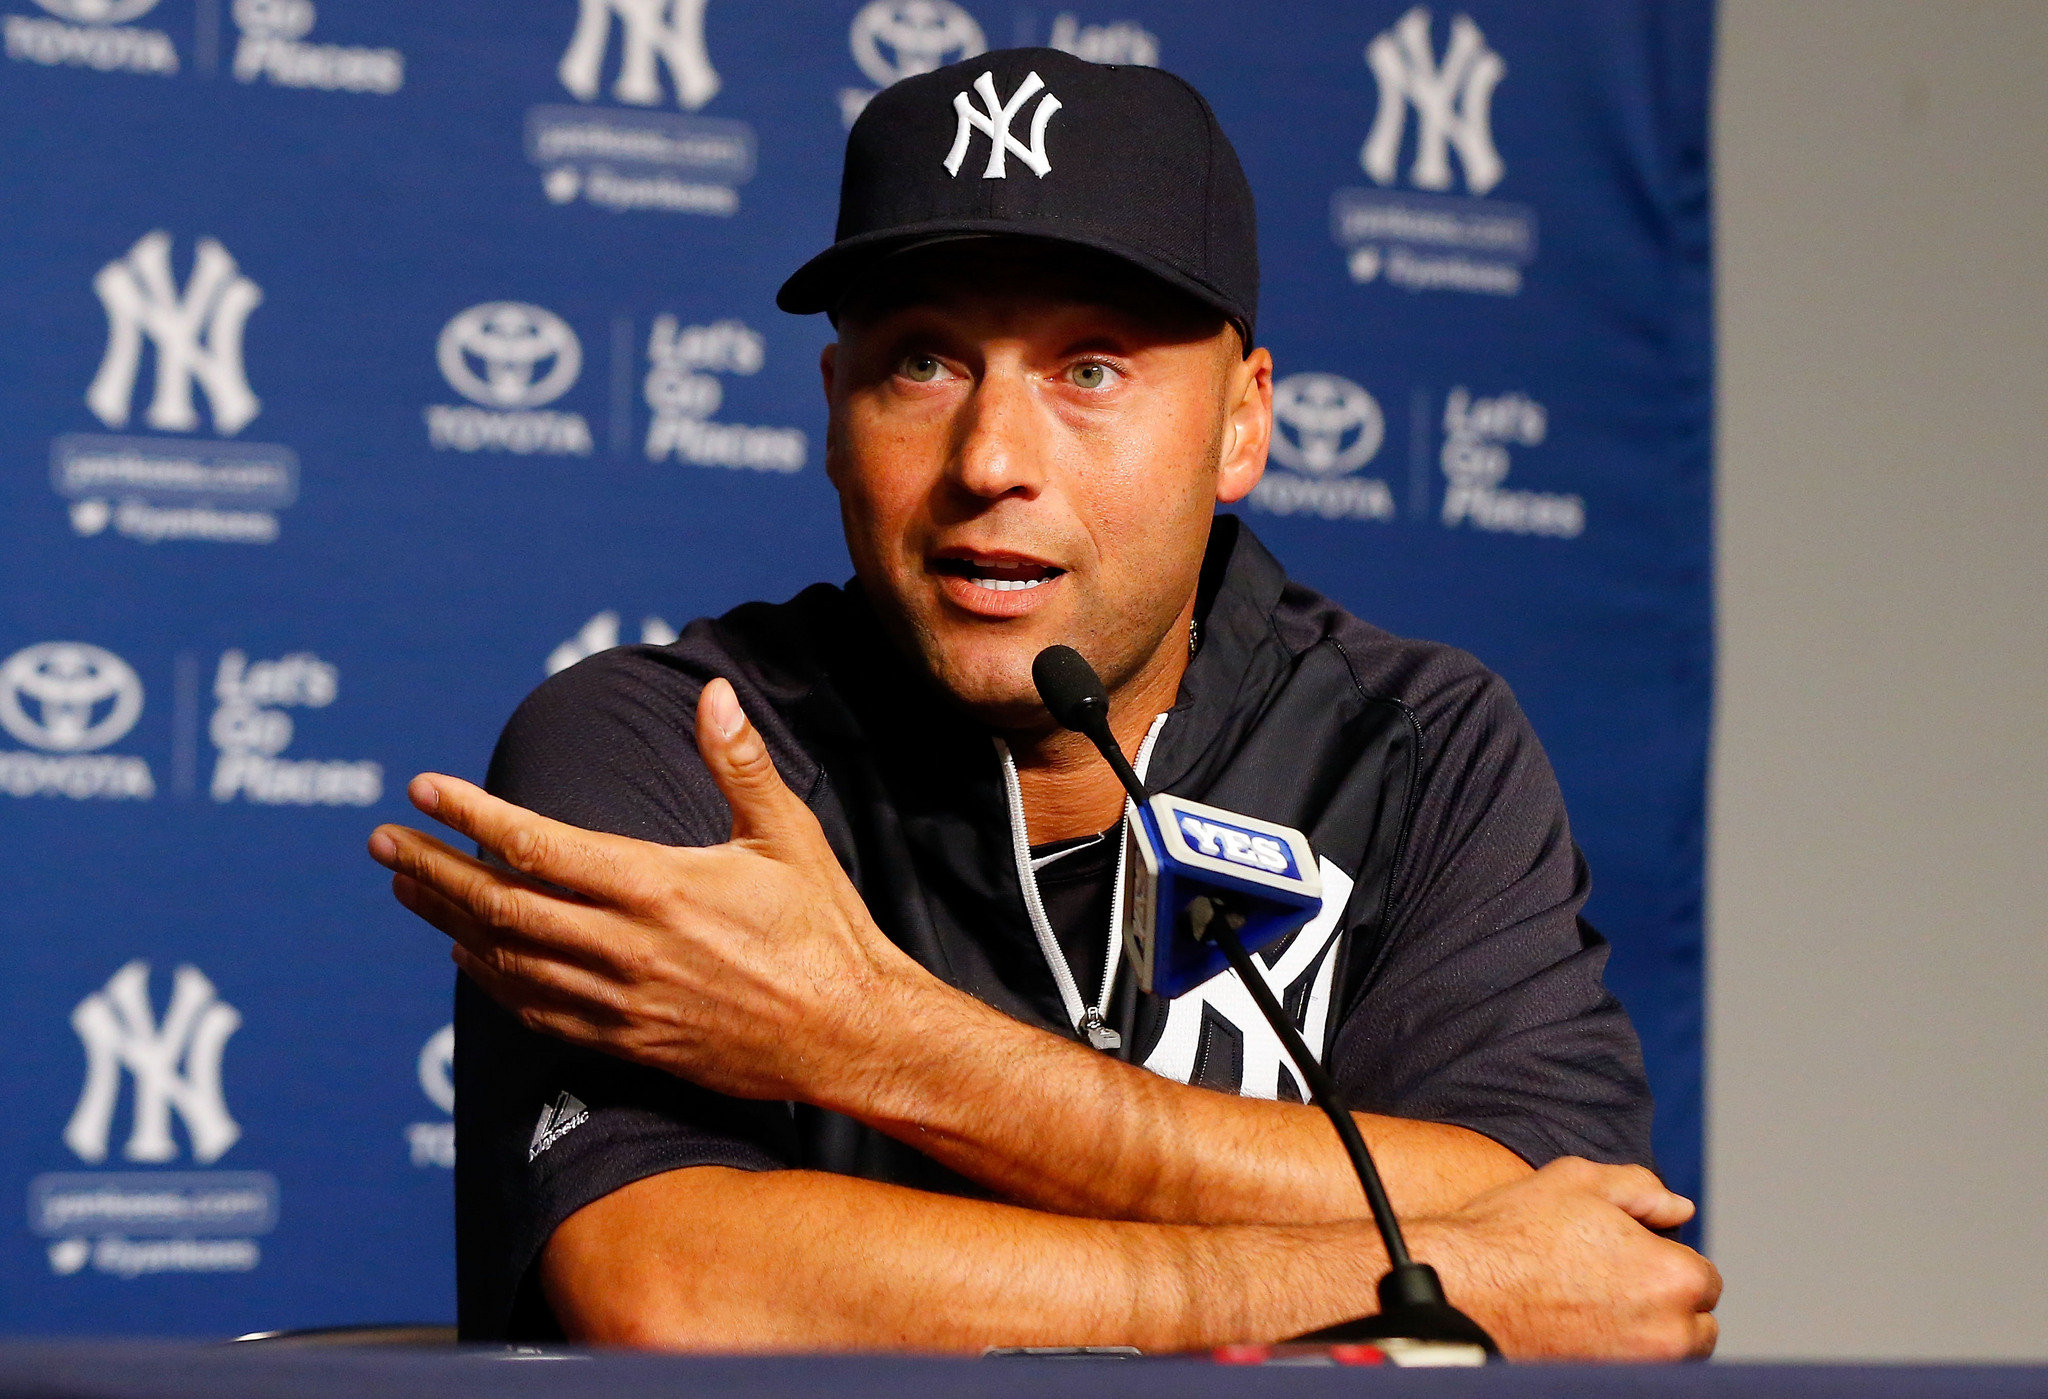 Derek-jeter-at-podium-discussing-injury-wirejpg-62b51d47241b5087